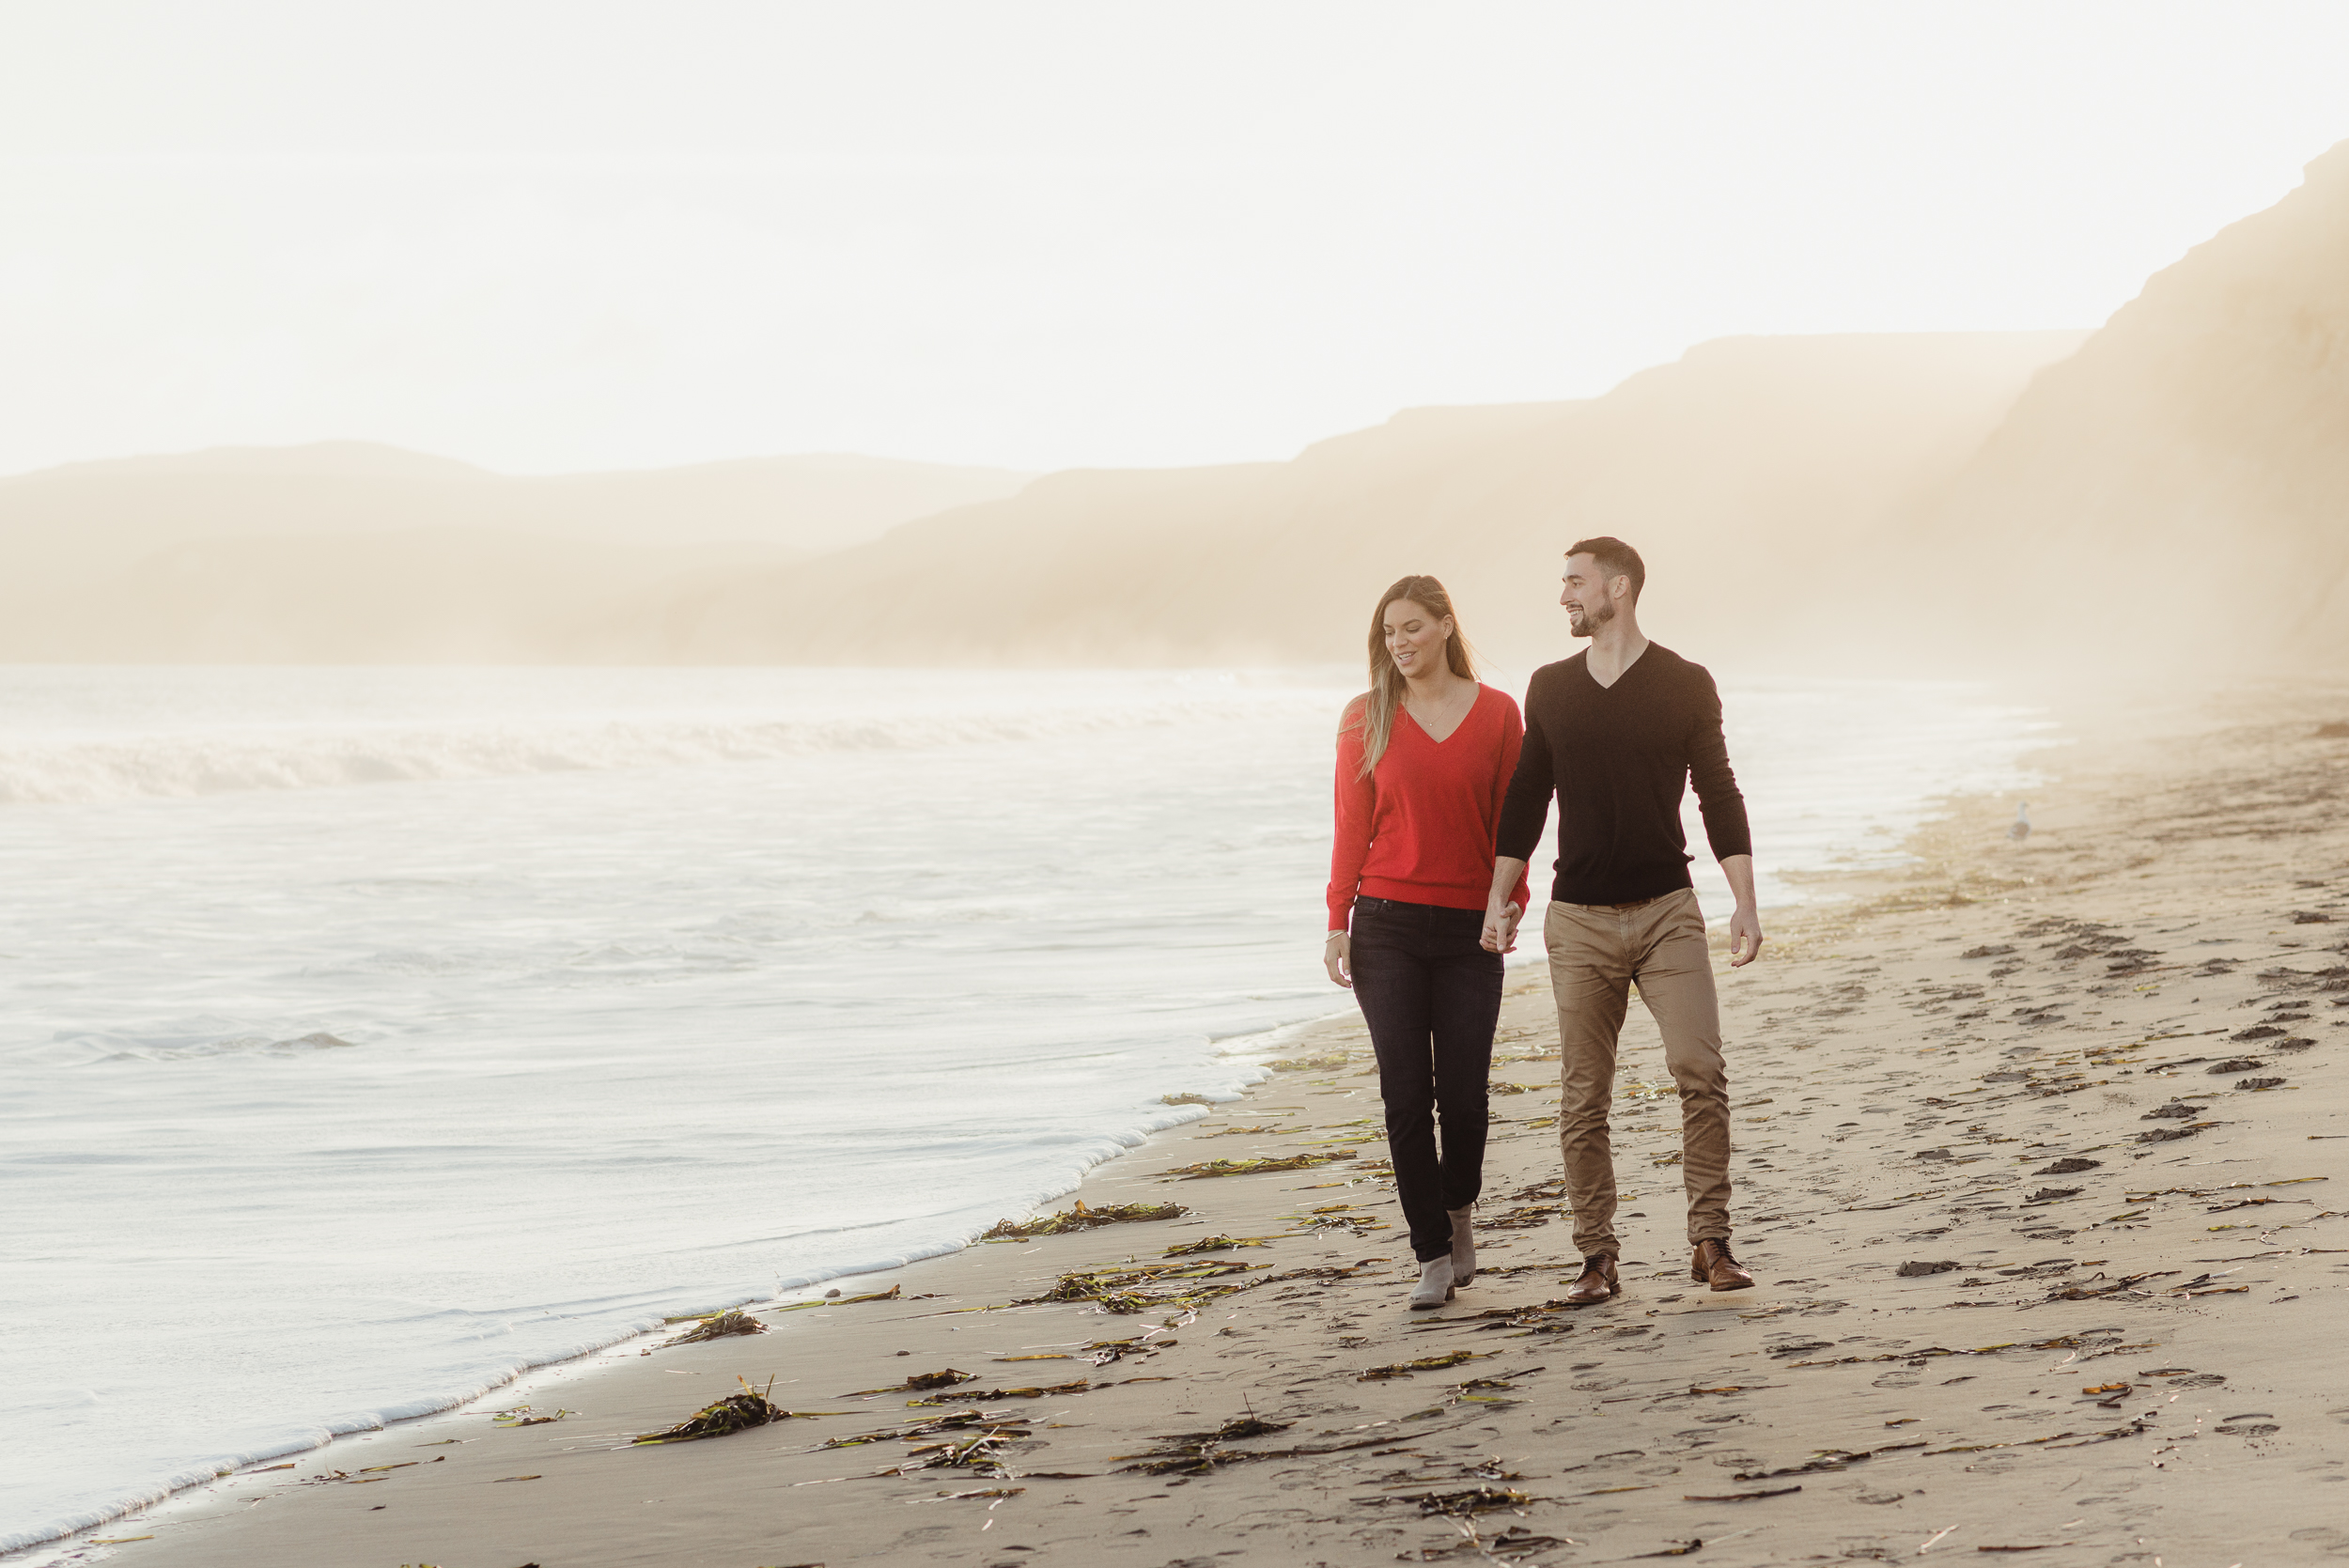 point-reyes-national-seashore-engagement-session-vivianchen-123.jpg